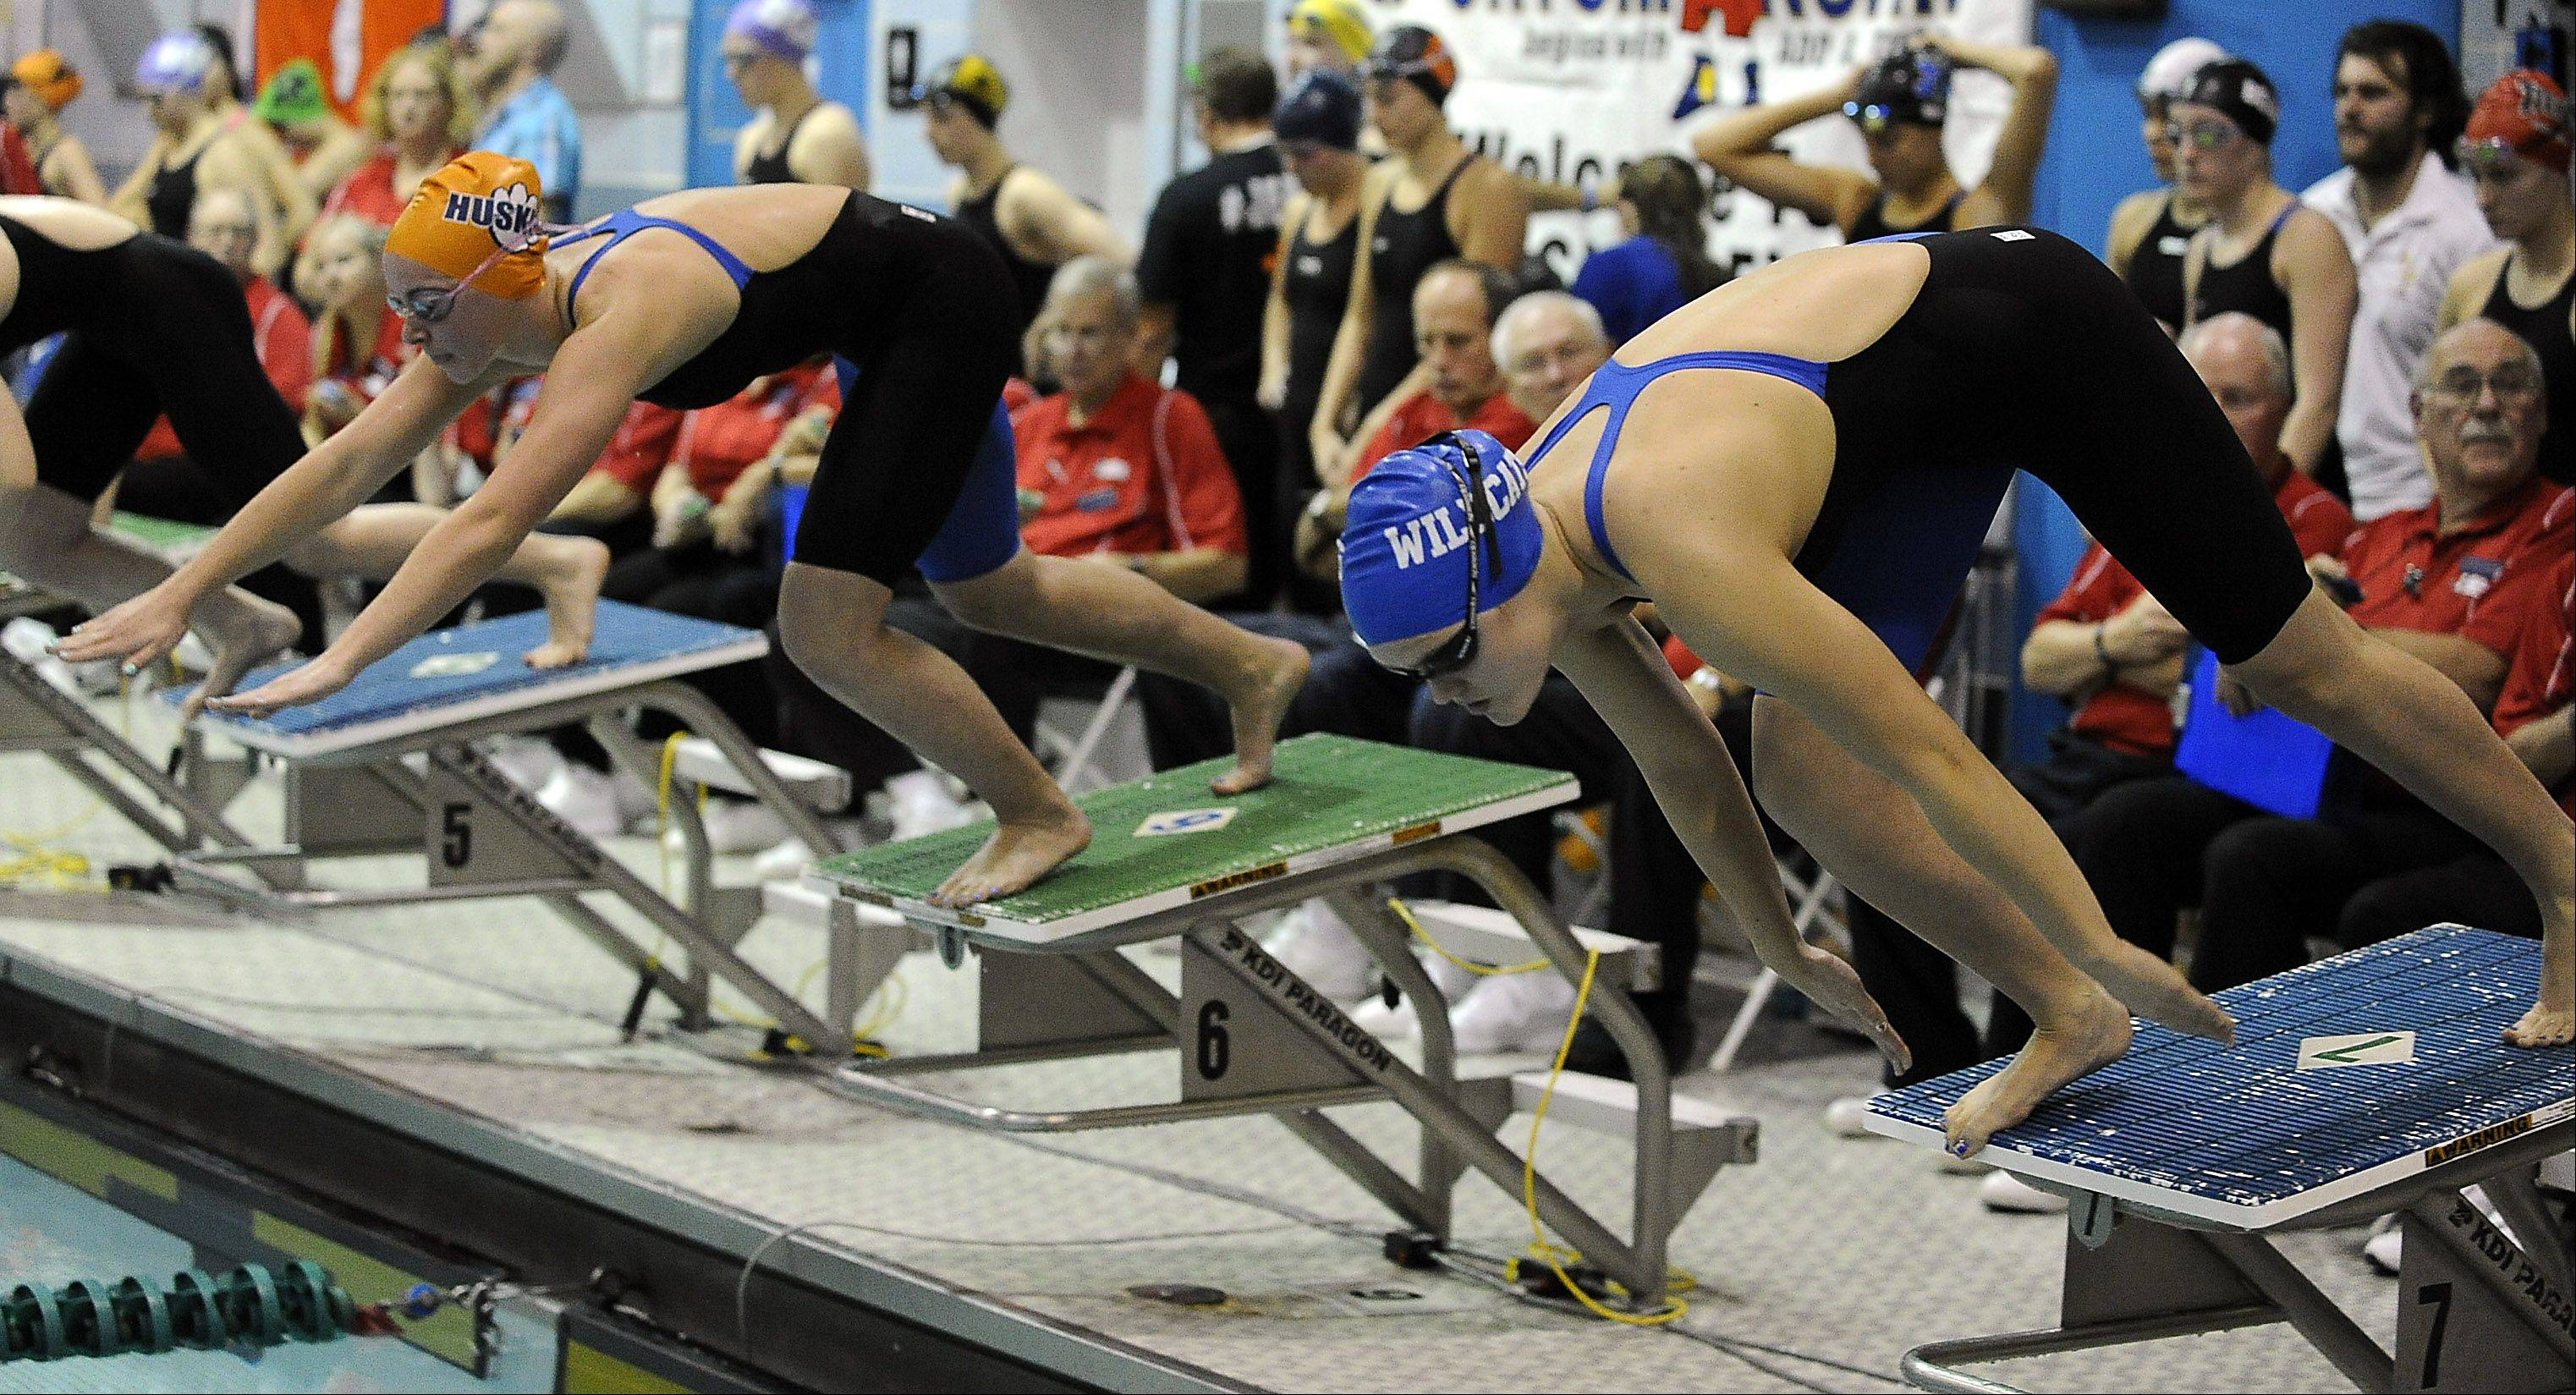 Wheeling's Theresa Godlewski fires off the platform at the start of the 50-yd. freestyle.